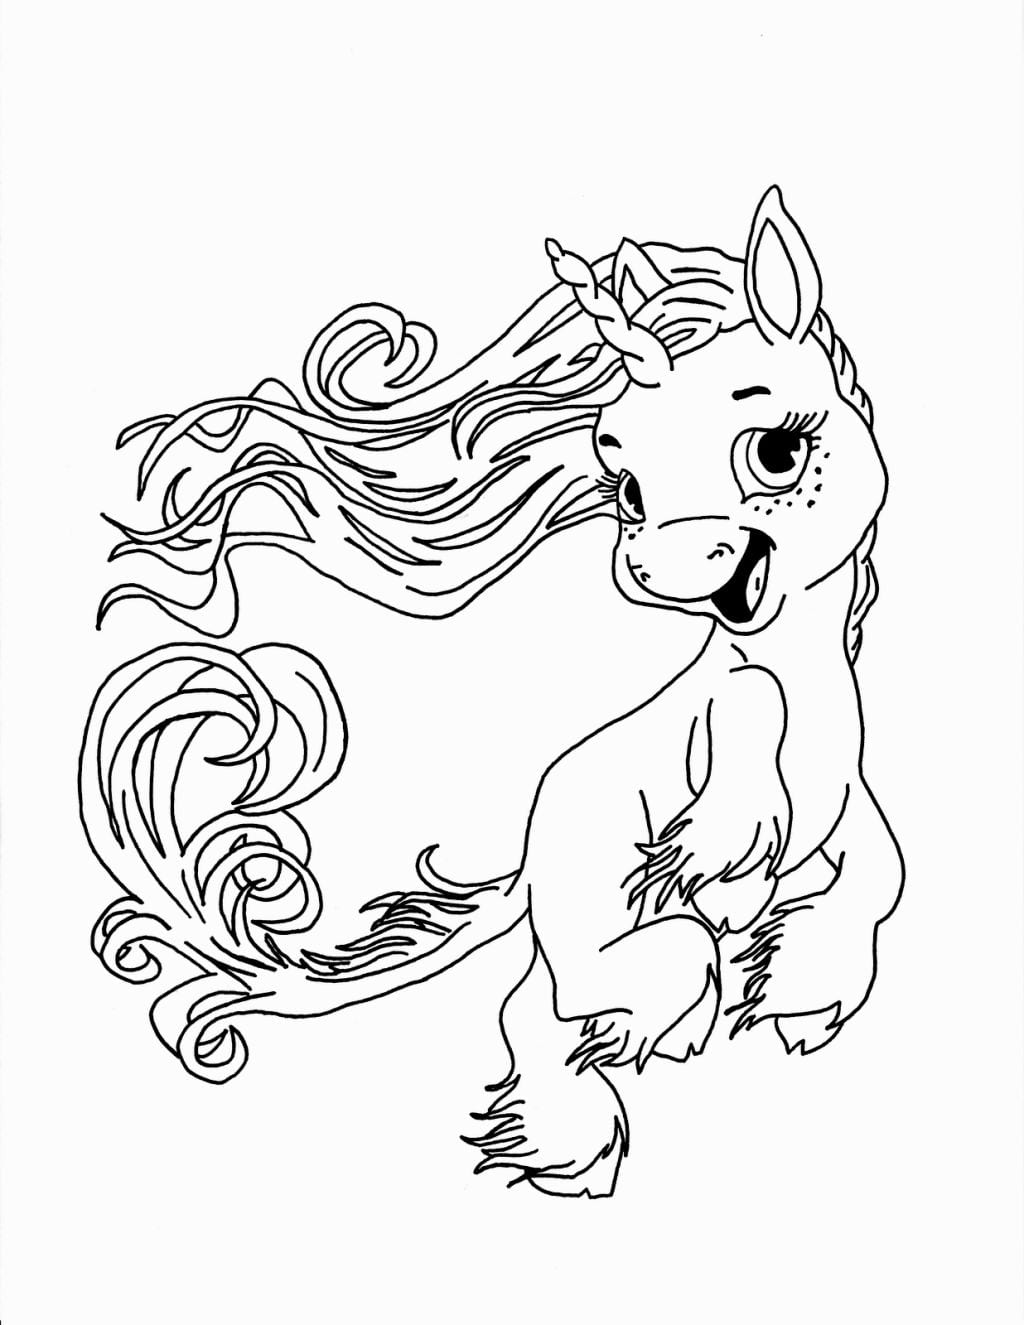 Fall Coloring Pages For Kids Printable in addition Top 10 Beautiful Highly Detailed Backpack Coloring Pages besides Printable Unicorn Coloring Pages furthermore Fall Coloring Pages For Kids Printable besides 3. on complicated coloring pages for adults